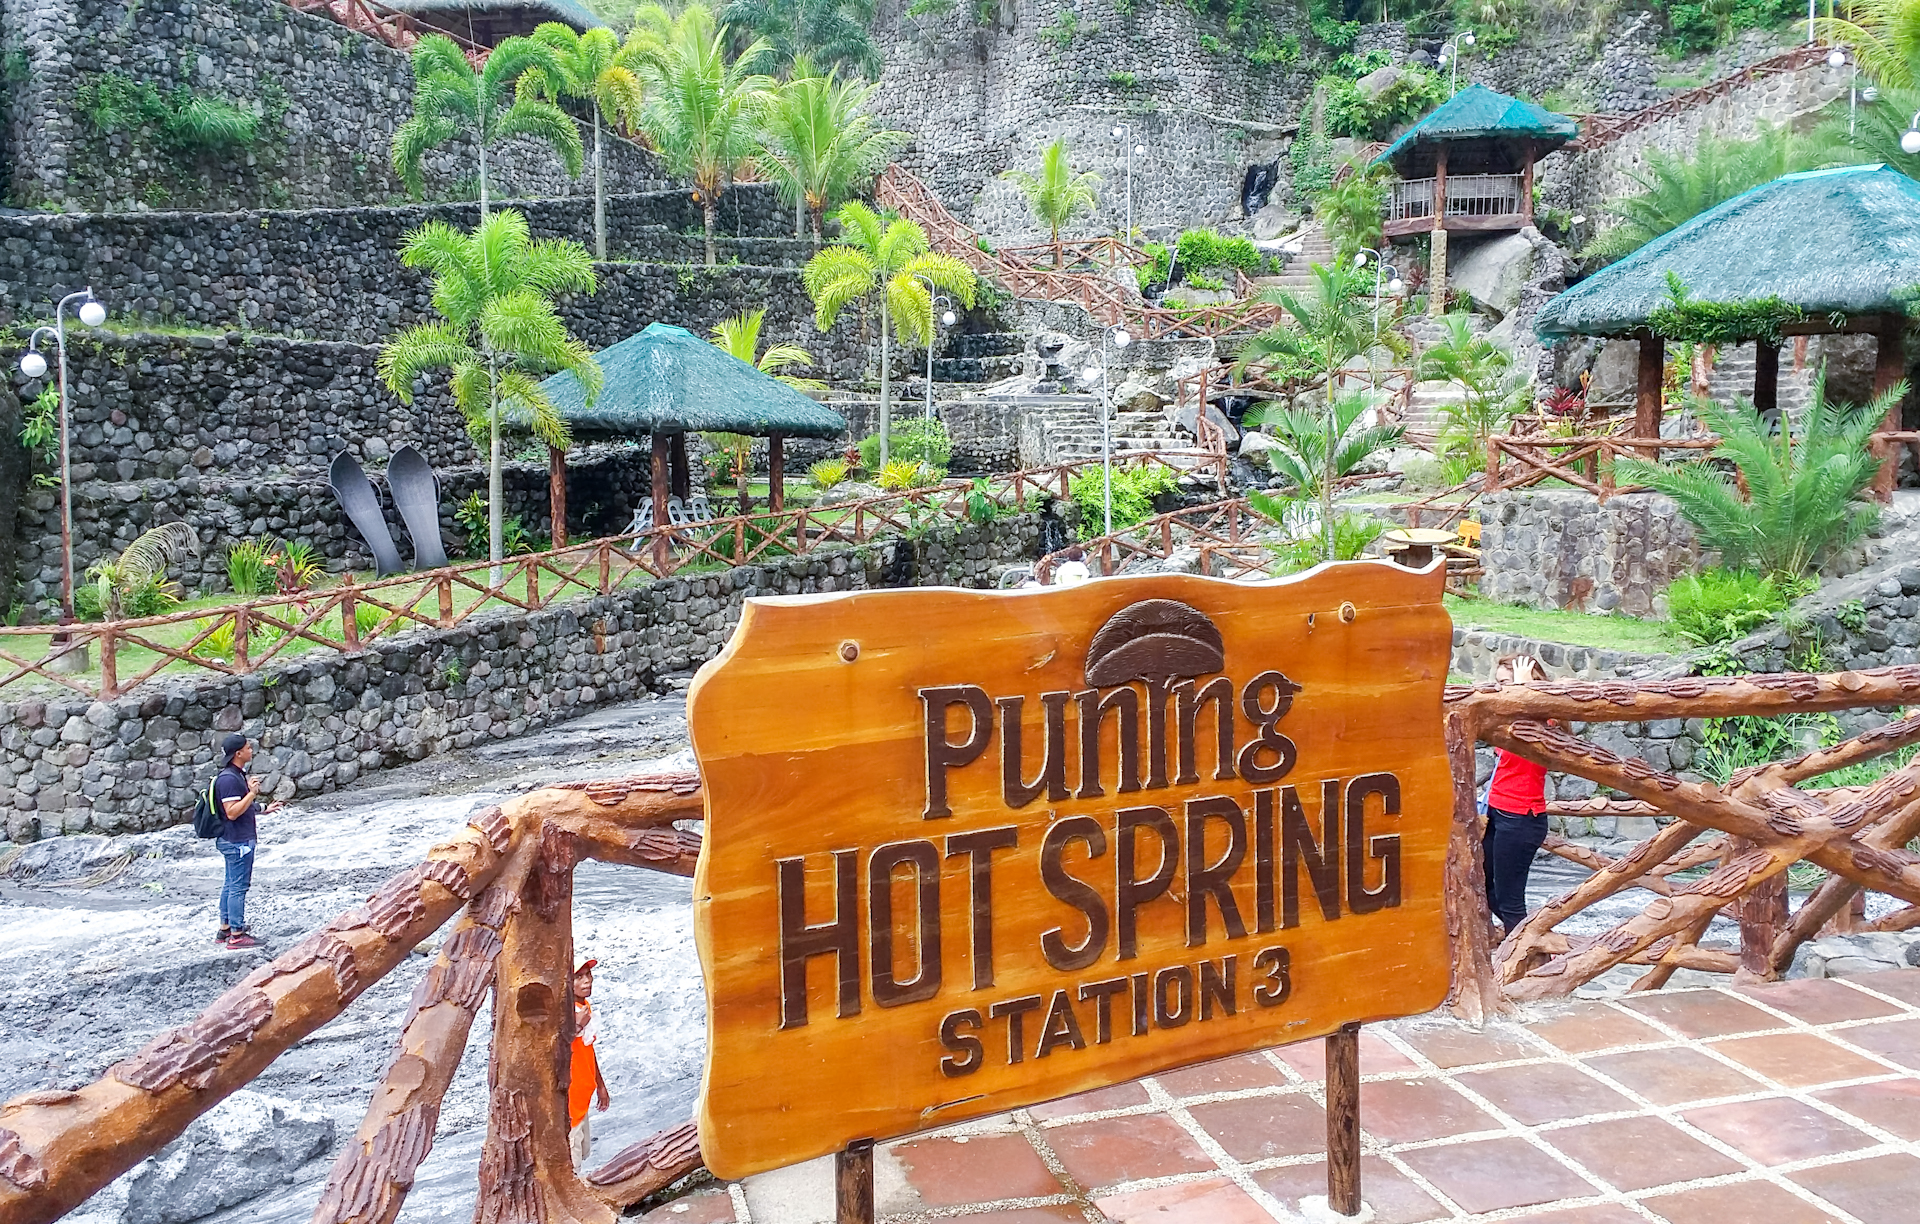 Puning Hot Spring Pampanga Day Tour | With Lunch & Transfers from Manila